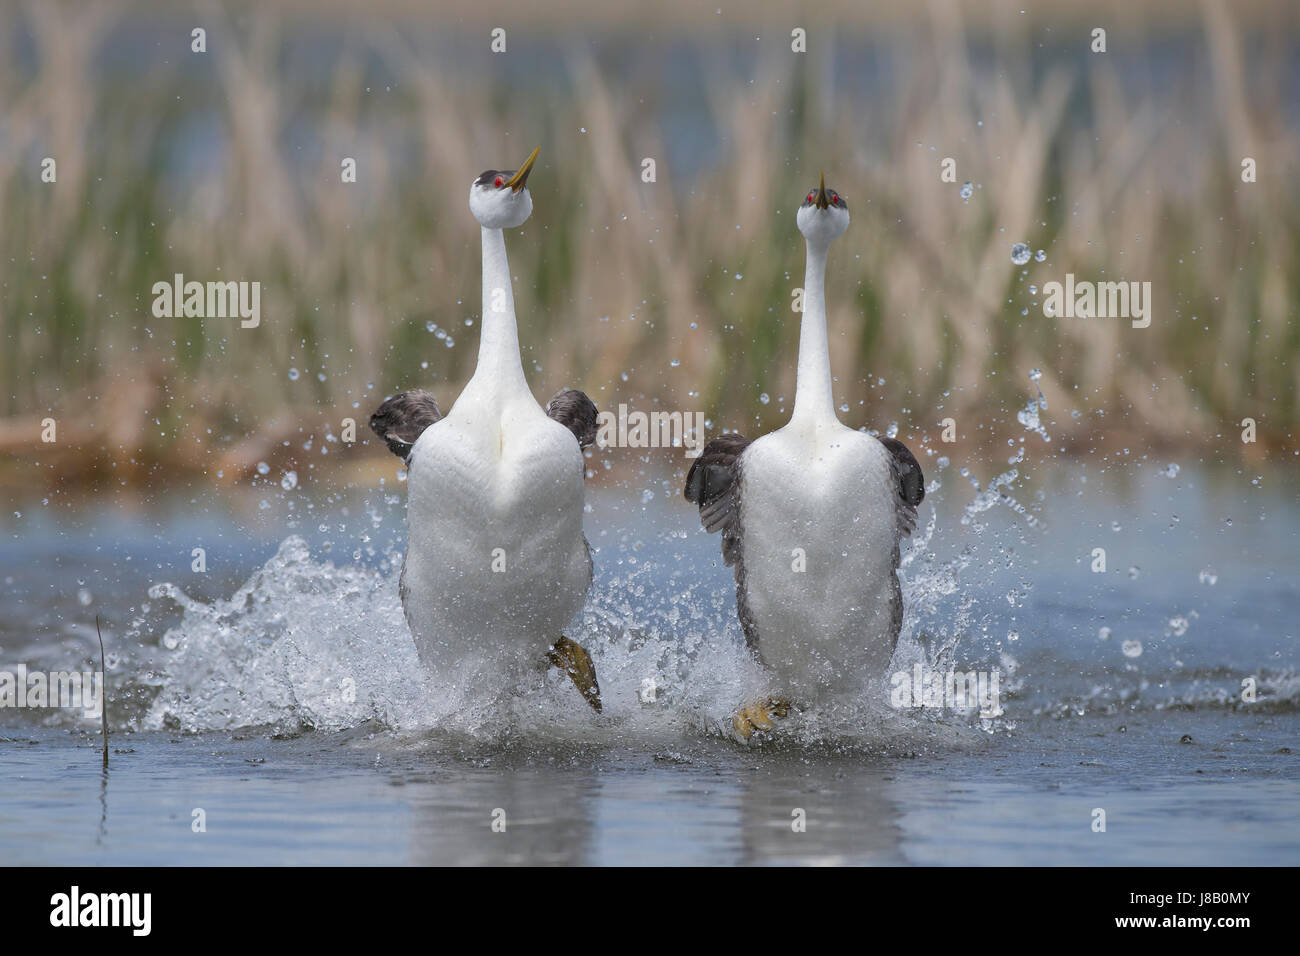 Western grebe courtship rushing - Stock Image